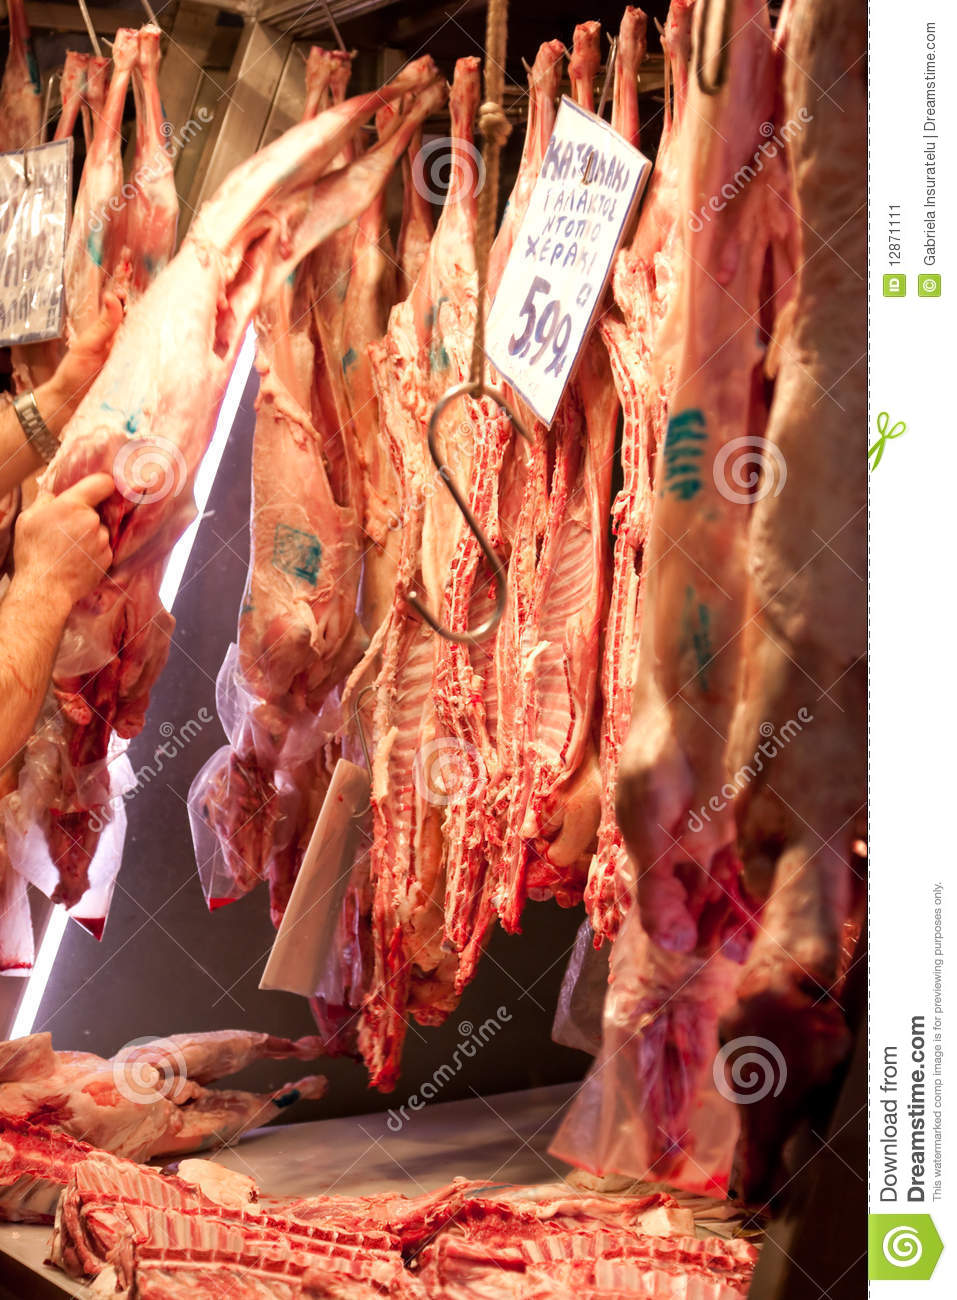 meat market stock images - photo #47